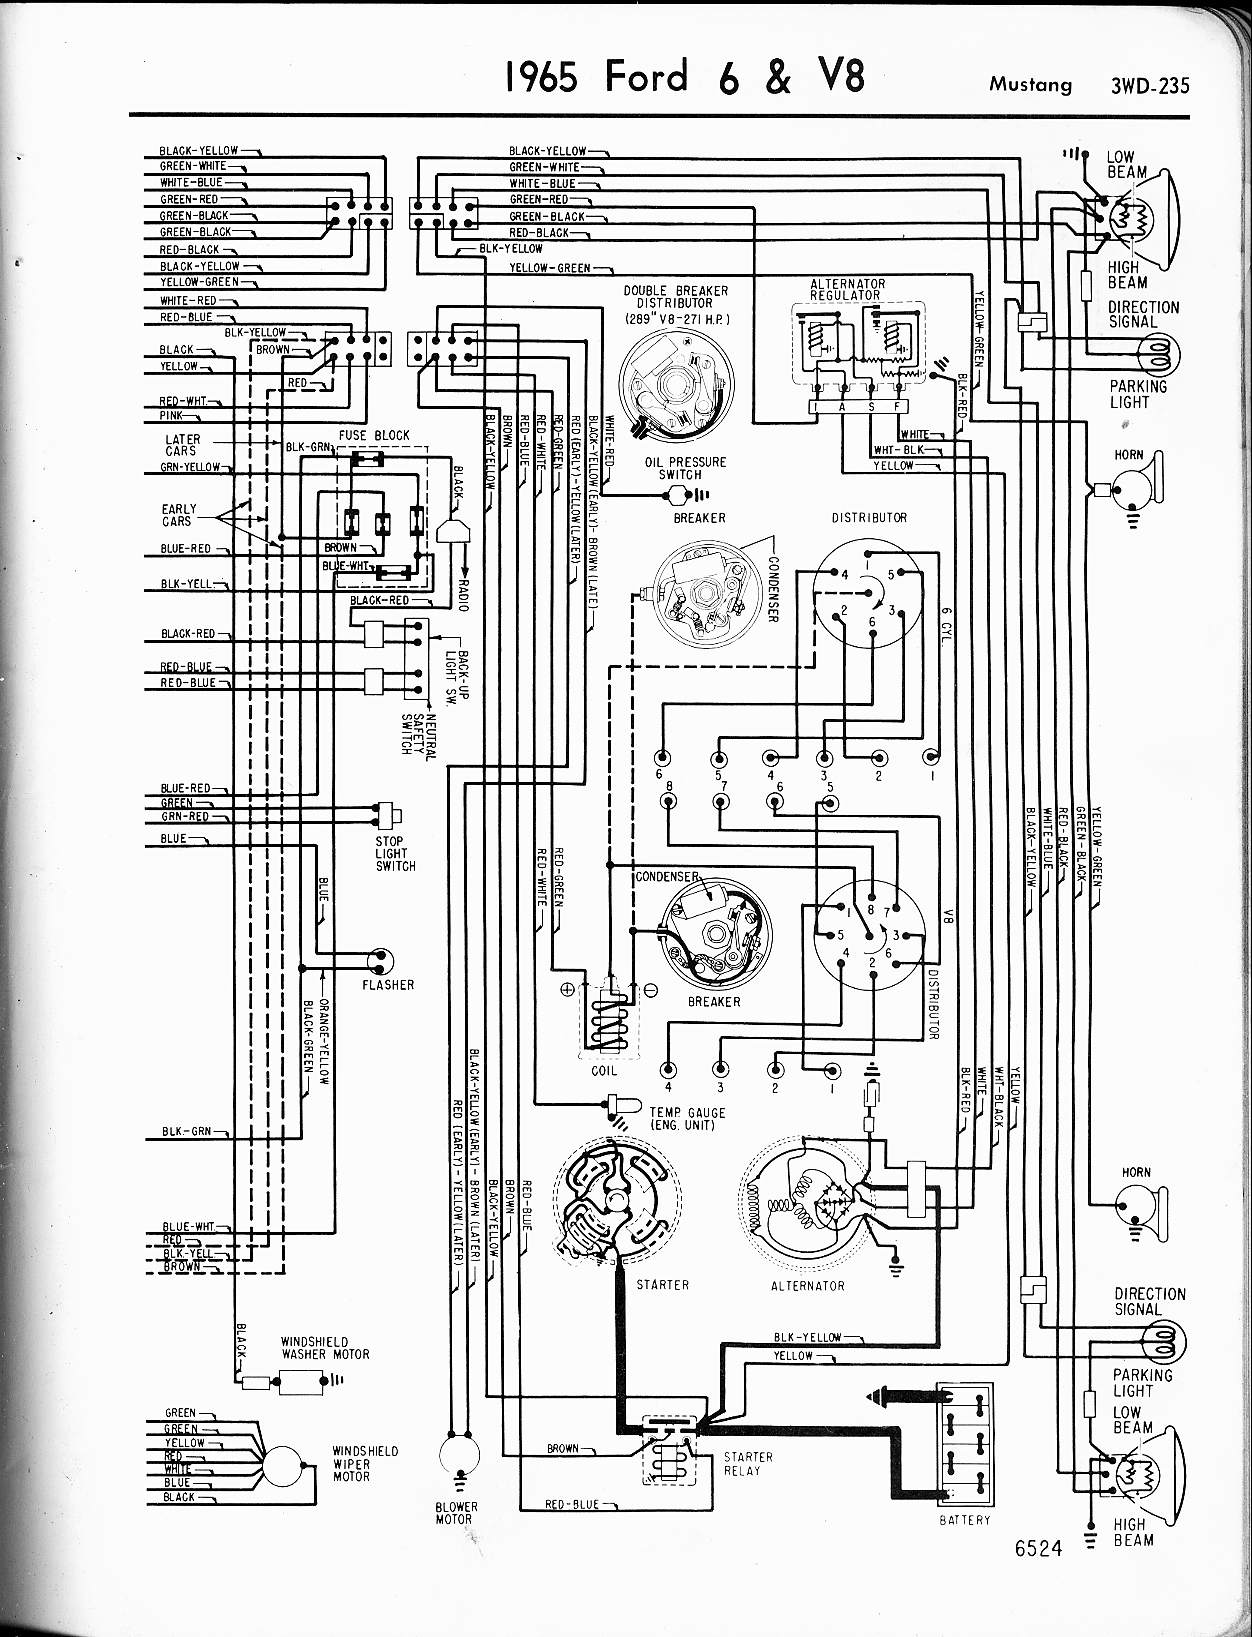 MWire5765 235 mustang wiring harness diagram 2005 2009 mustang wiring harness 1965 ford mustang wiring diagrams at sewacar.co